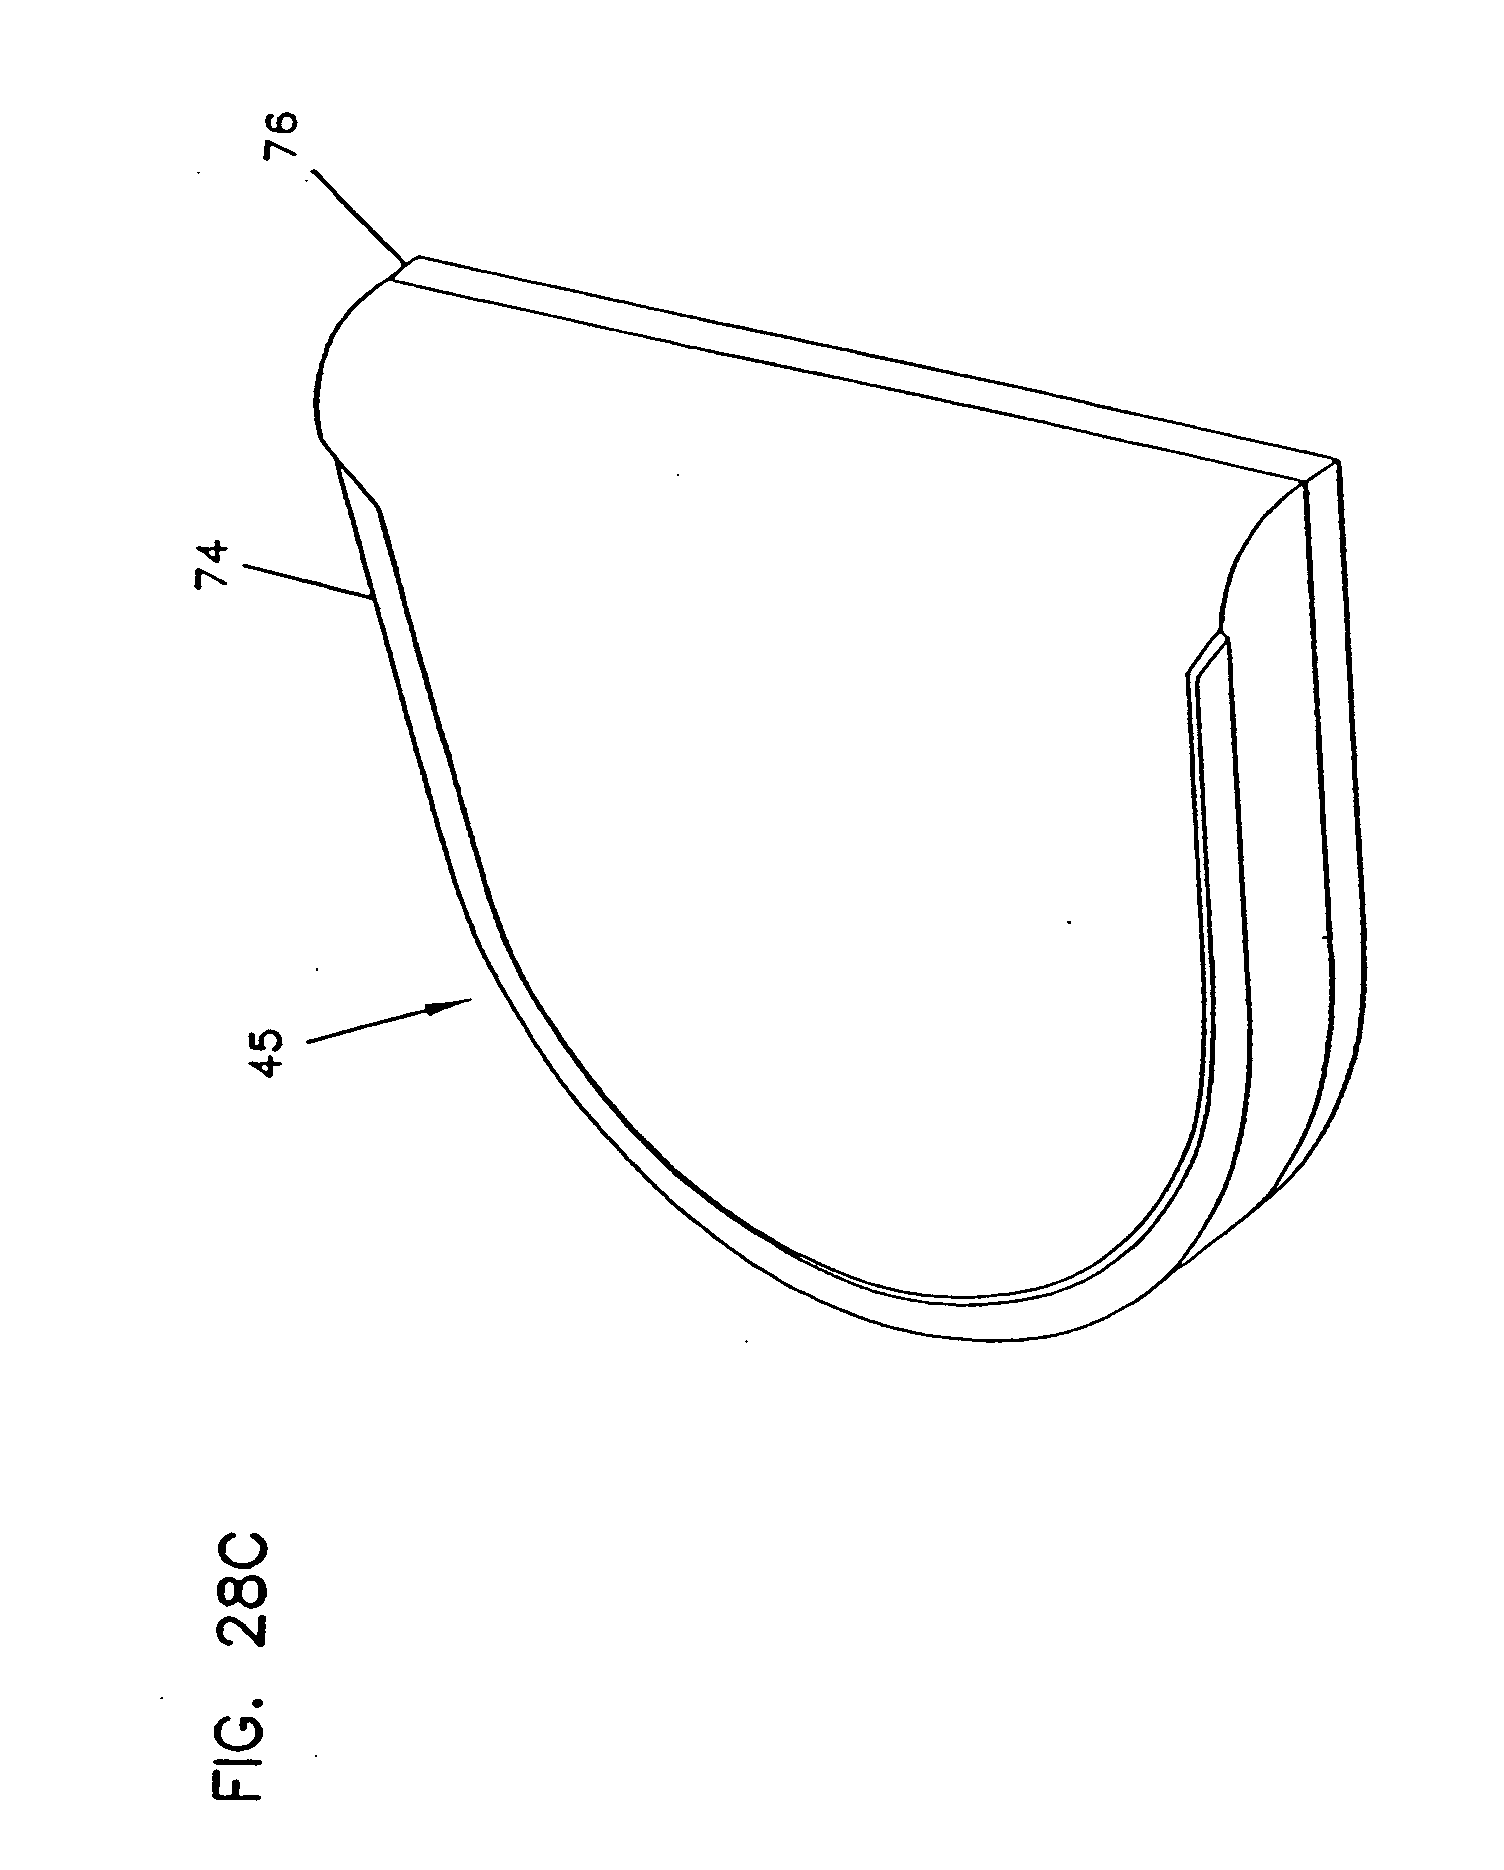 Us20050121322a1 analyte monitoring device and methods of use patents